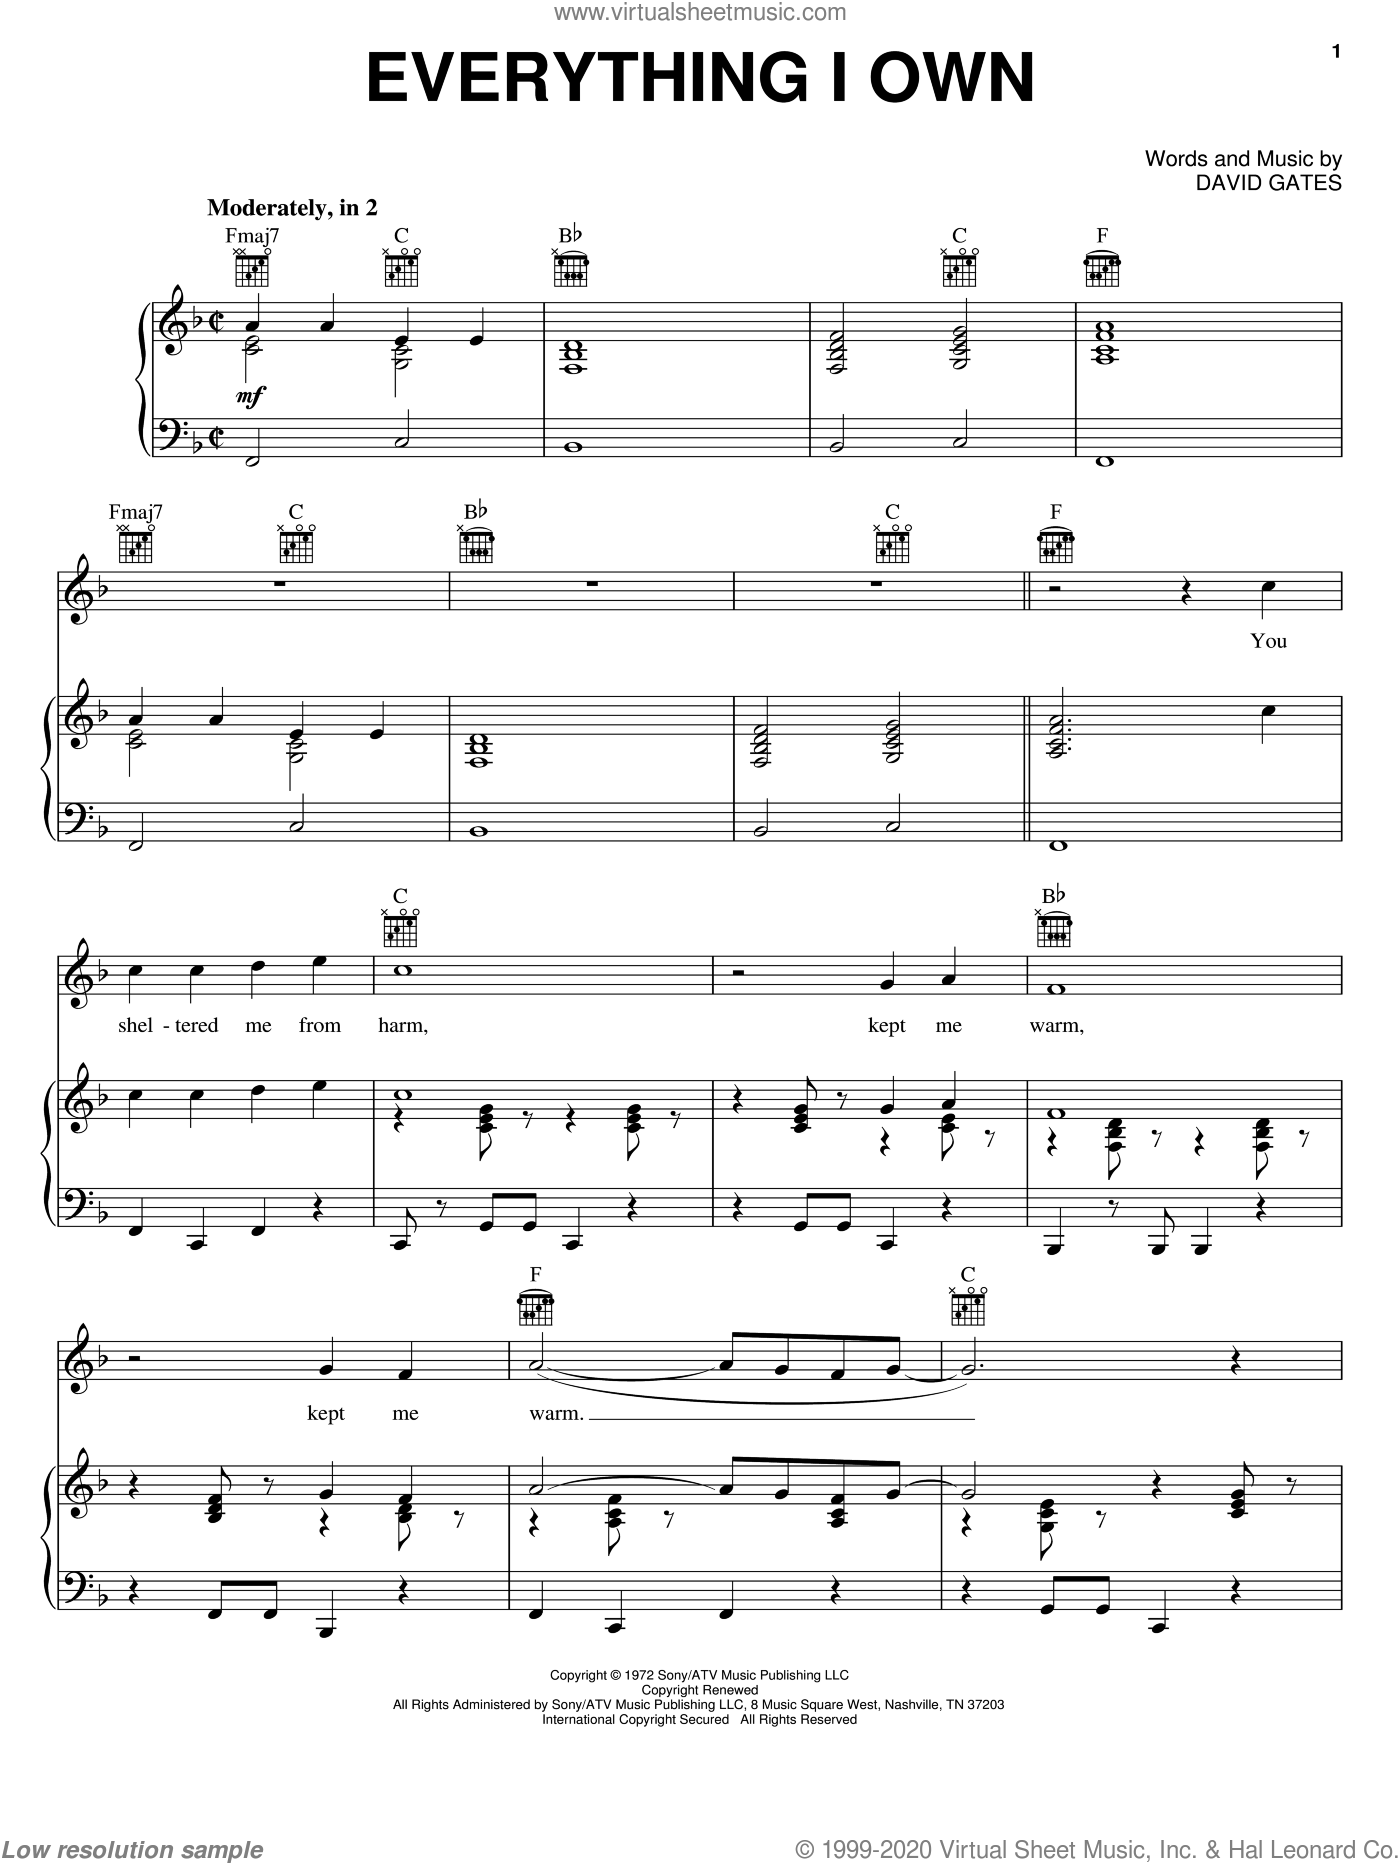 Everything I Own sheet music for voice, piano or guitar by David Gates